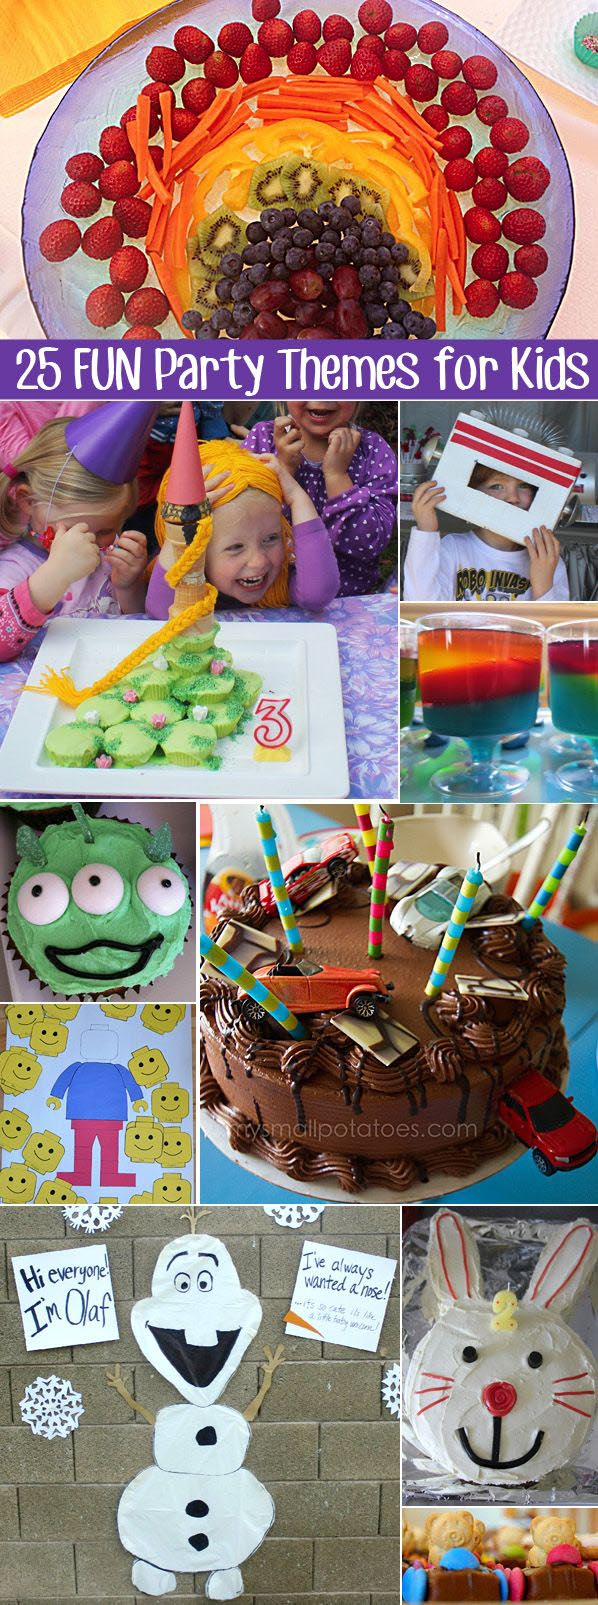 Fun Party Theme Ideas